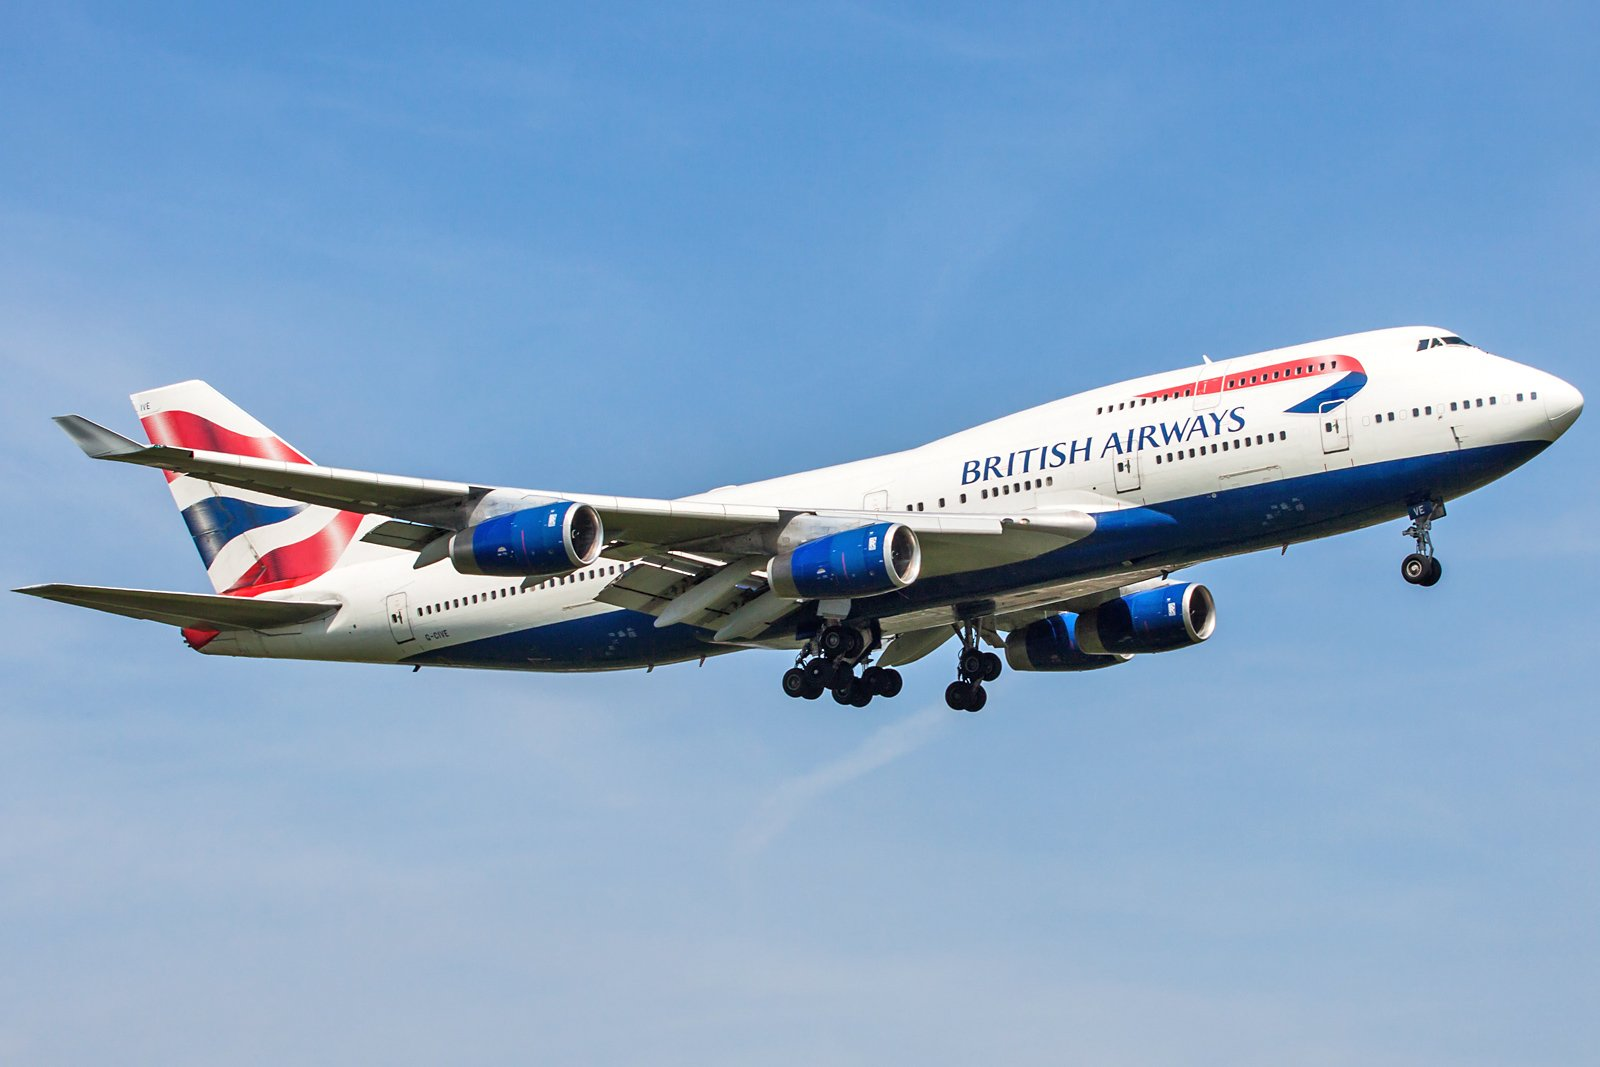 British Airways Boeing 747-436 G-CIVE